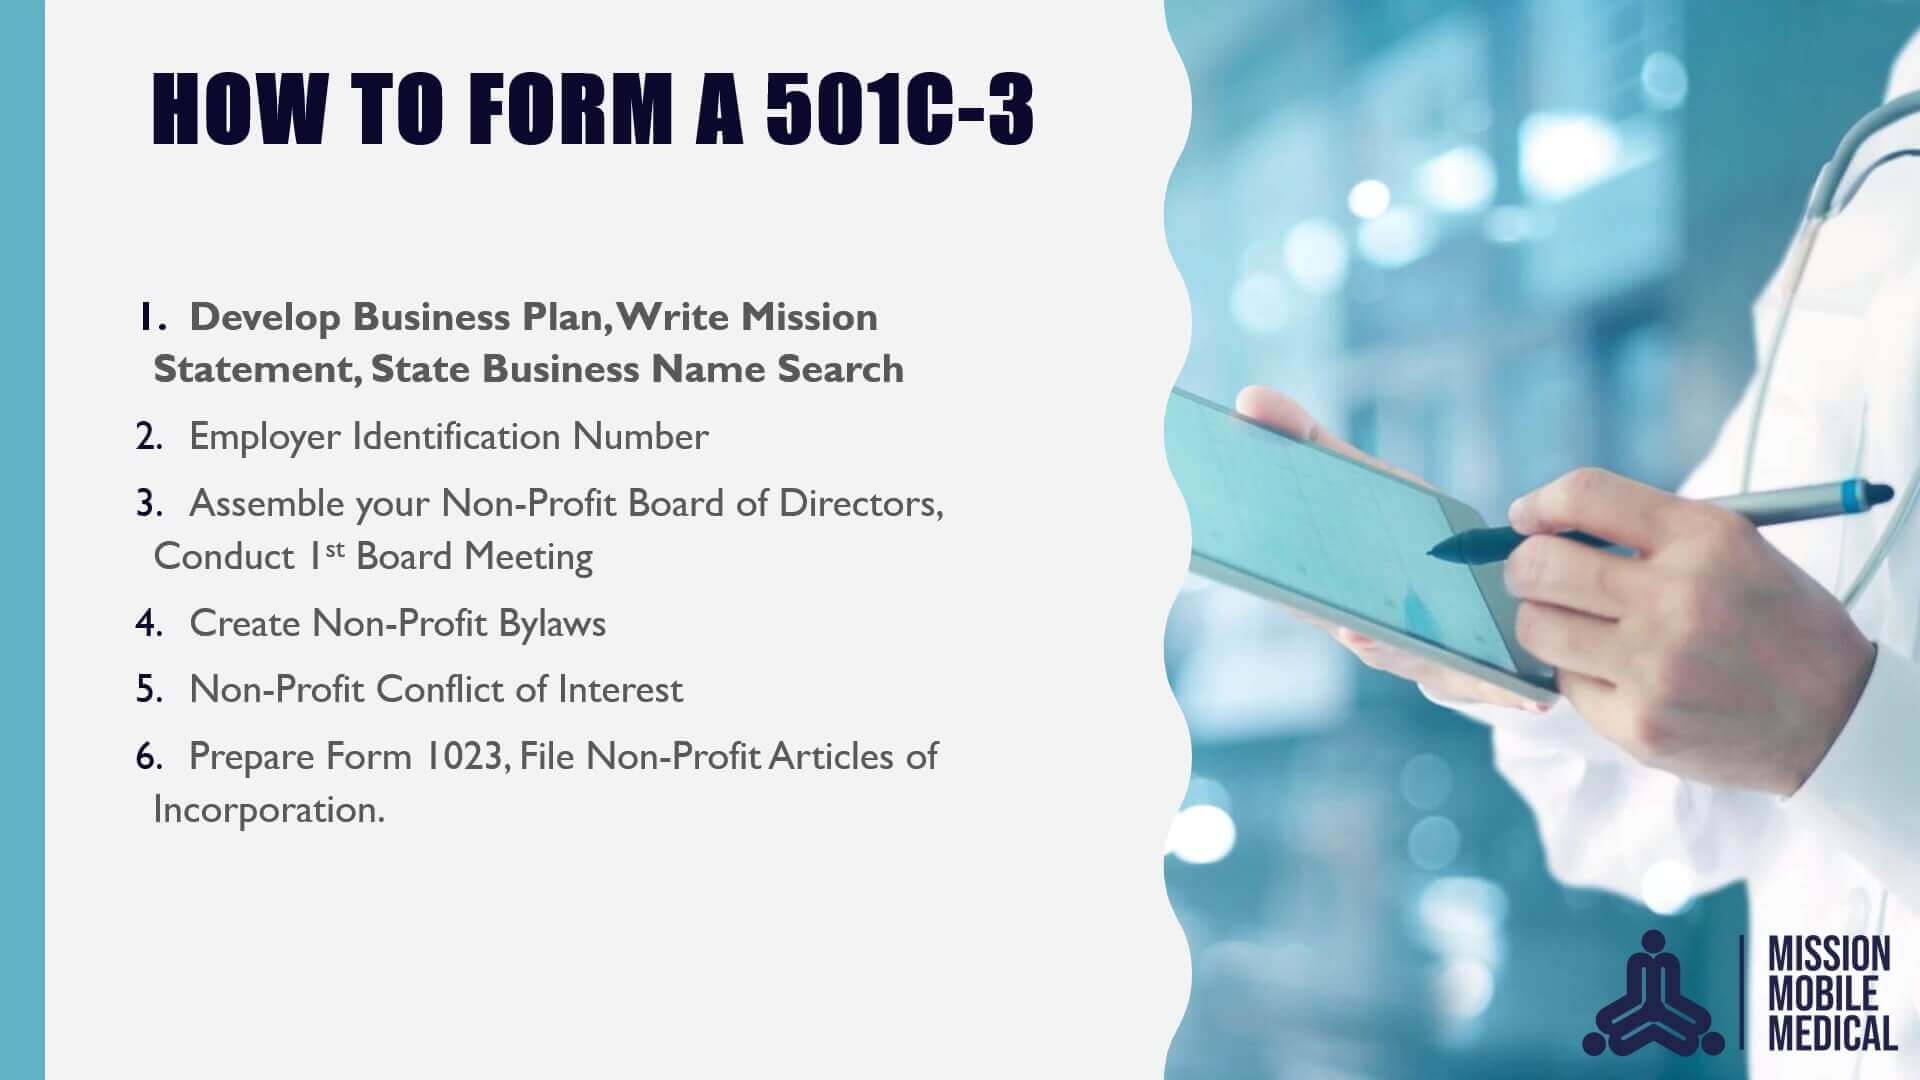 501c-3 - Overview - Part 2